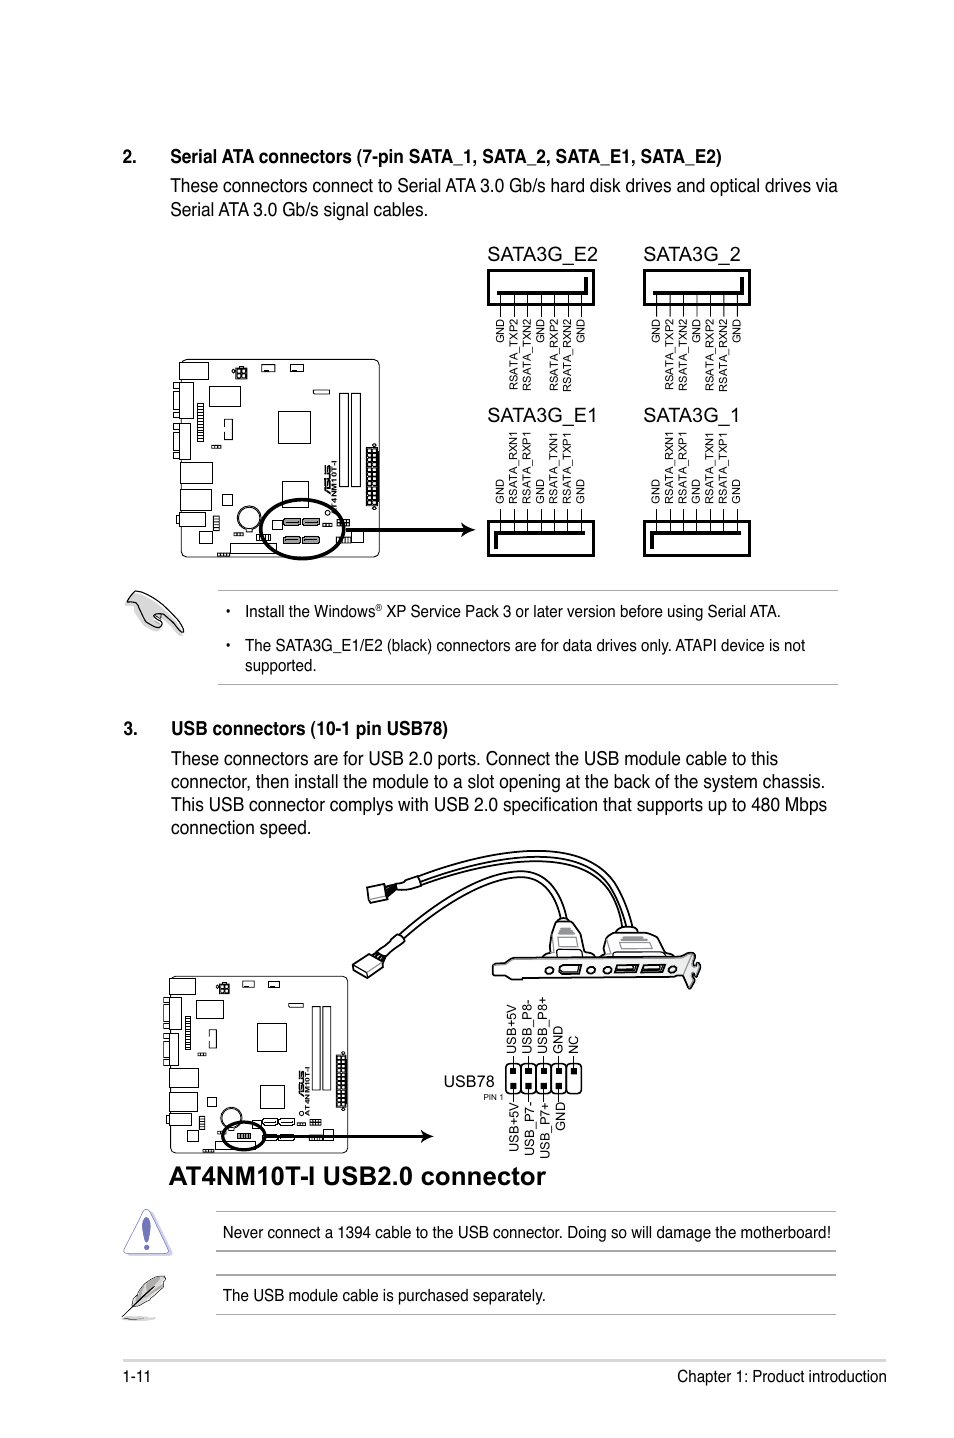 Sata3g_e2 sata3g_e1, Sata3g_2 sata3g_1 | Asus AT4NM10T-I User Manual | Page  21 / 44